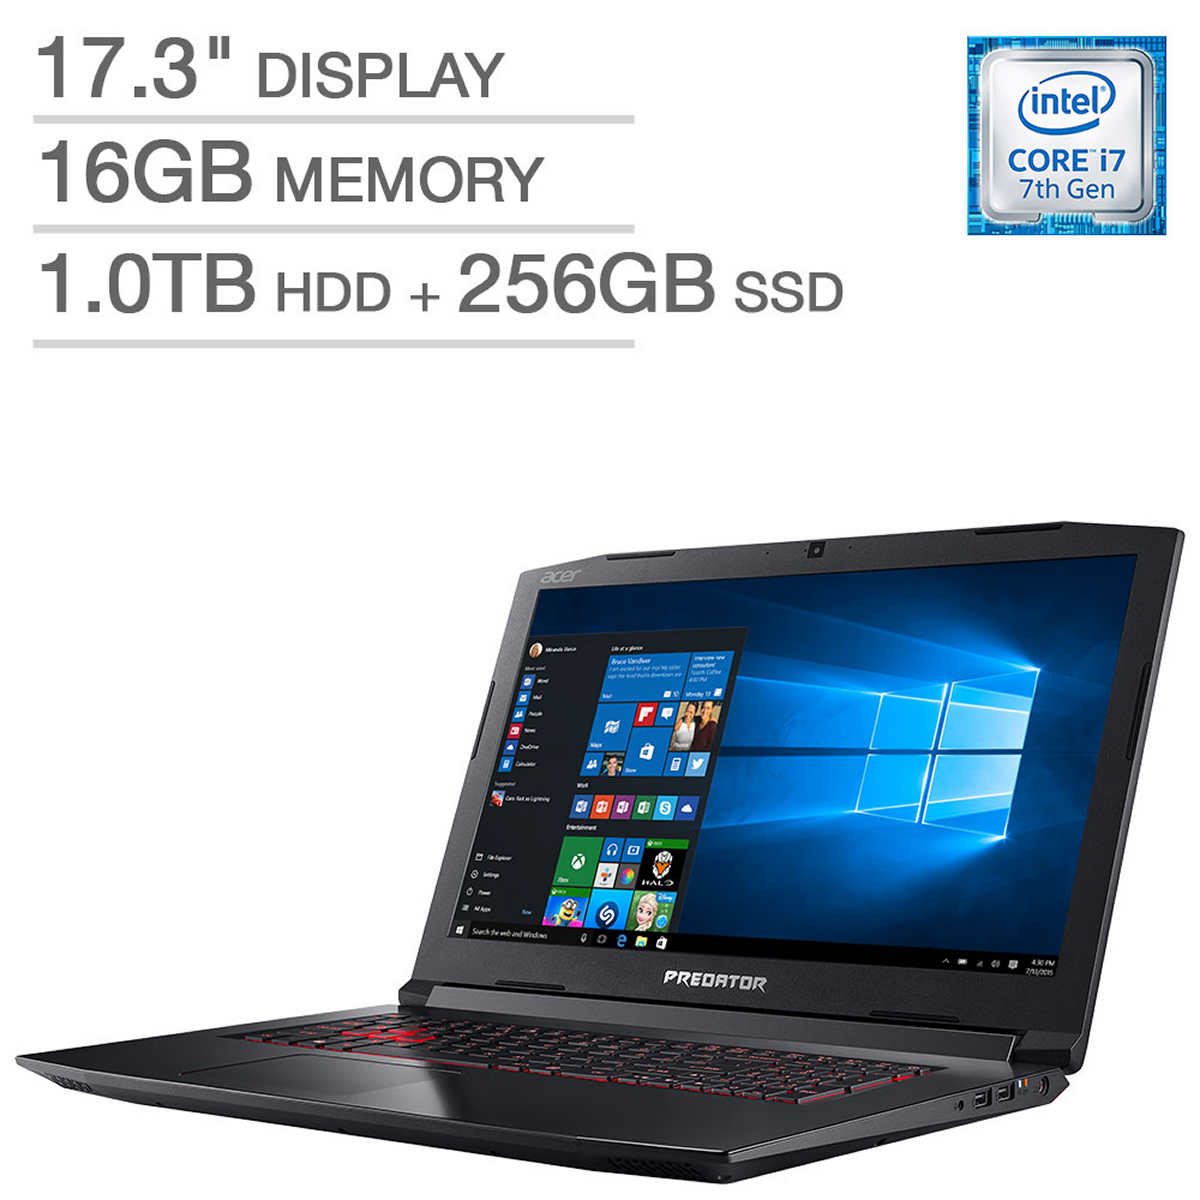 Acer Predator Helios 300 Gaming Laptop: Core i7-7700HQ, 16GB RAM, 256GB SSD + 1TB HDD, Nvidia 1060 6GB Graphics by Acer